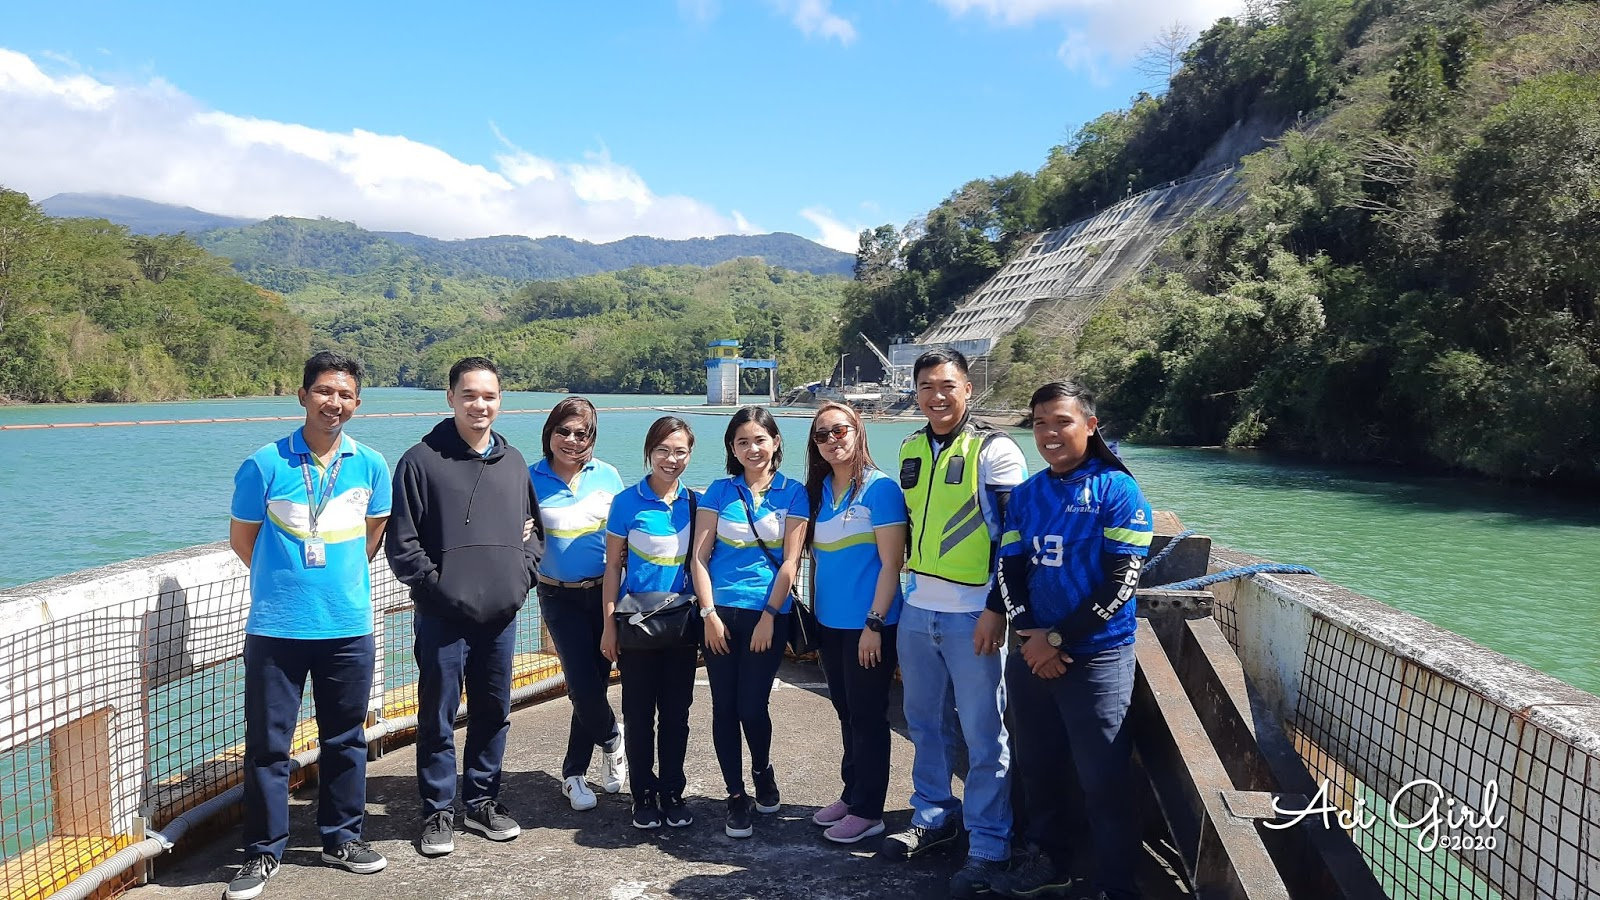 Team Maynilad   (L-R) Water Supply Operations: Mr.Marvin Villanueva and Mr. Rodel Tumandao.   Corporate Communications: Ms. Grace Laxa, Ms. Zye Cartel, Ms. Lalaine Tiangco and Ms. Jess Leobrera,   Corporate Quality, Environment, Safety, and Health Mr. Alexis Madison Datong and Mr. Julio Meneses